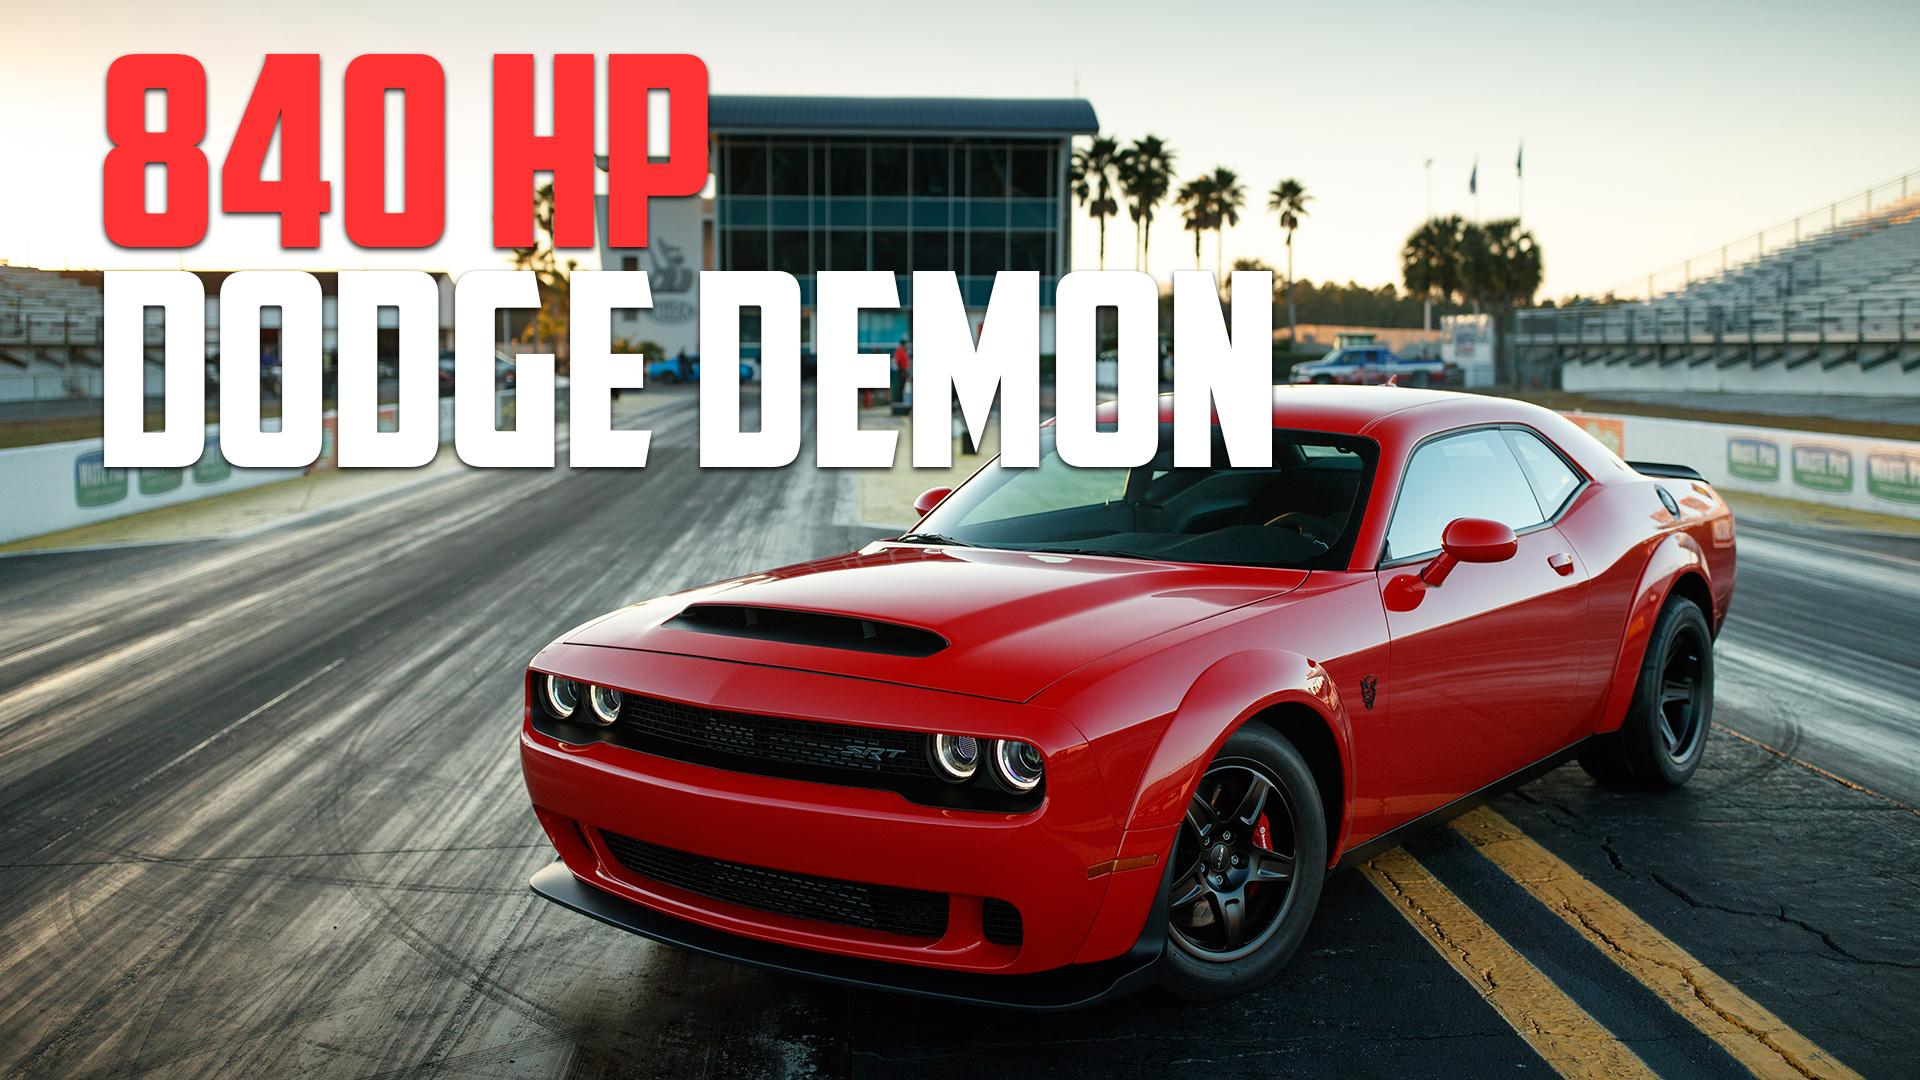 Inner Demon revealed: 840 hp and other jaw-dropping ...